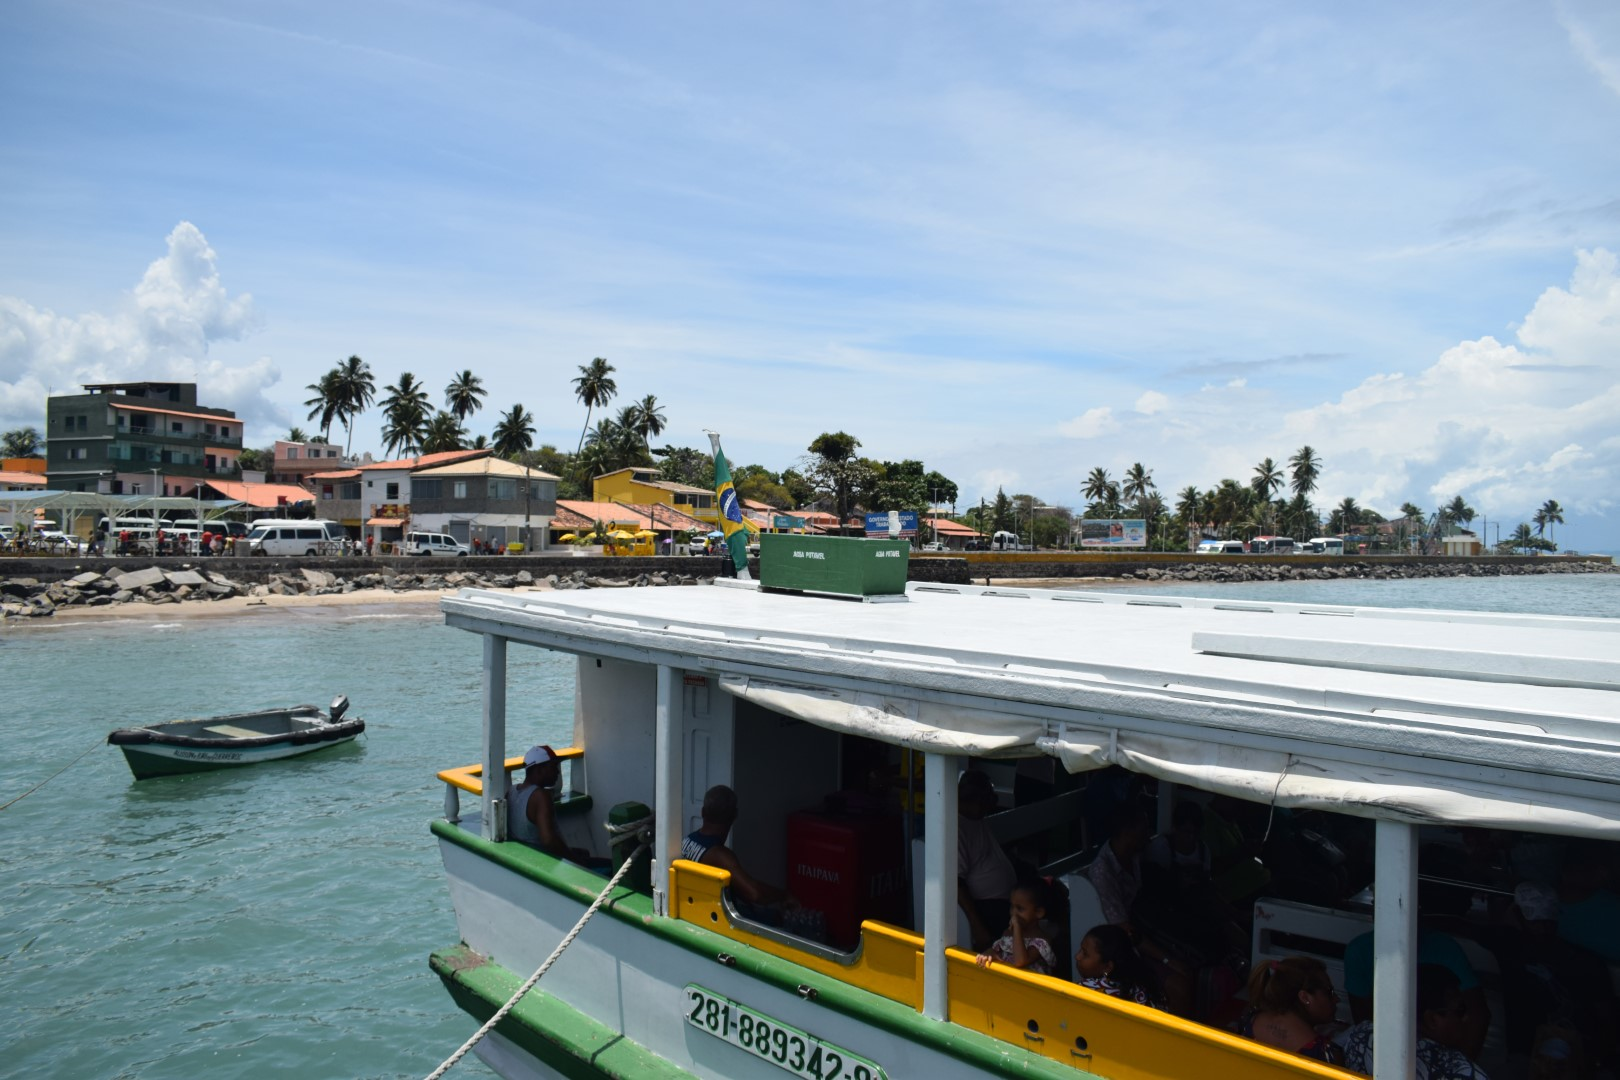 Arriving in Ilha de Itaparica